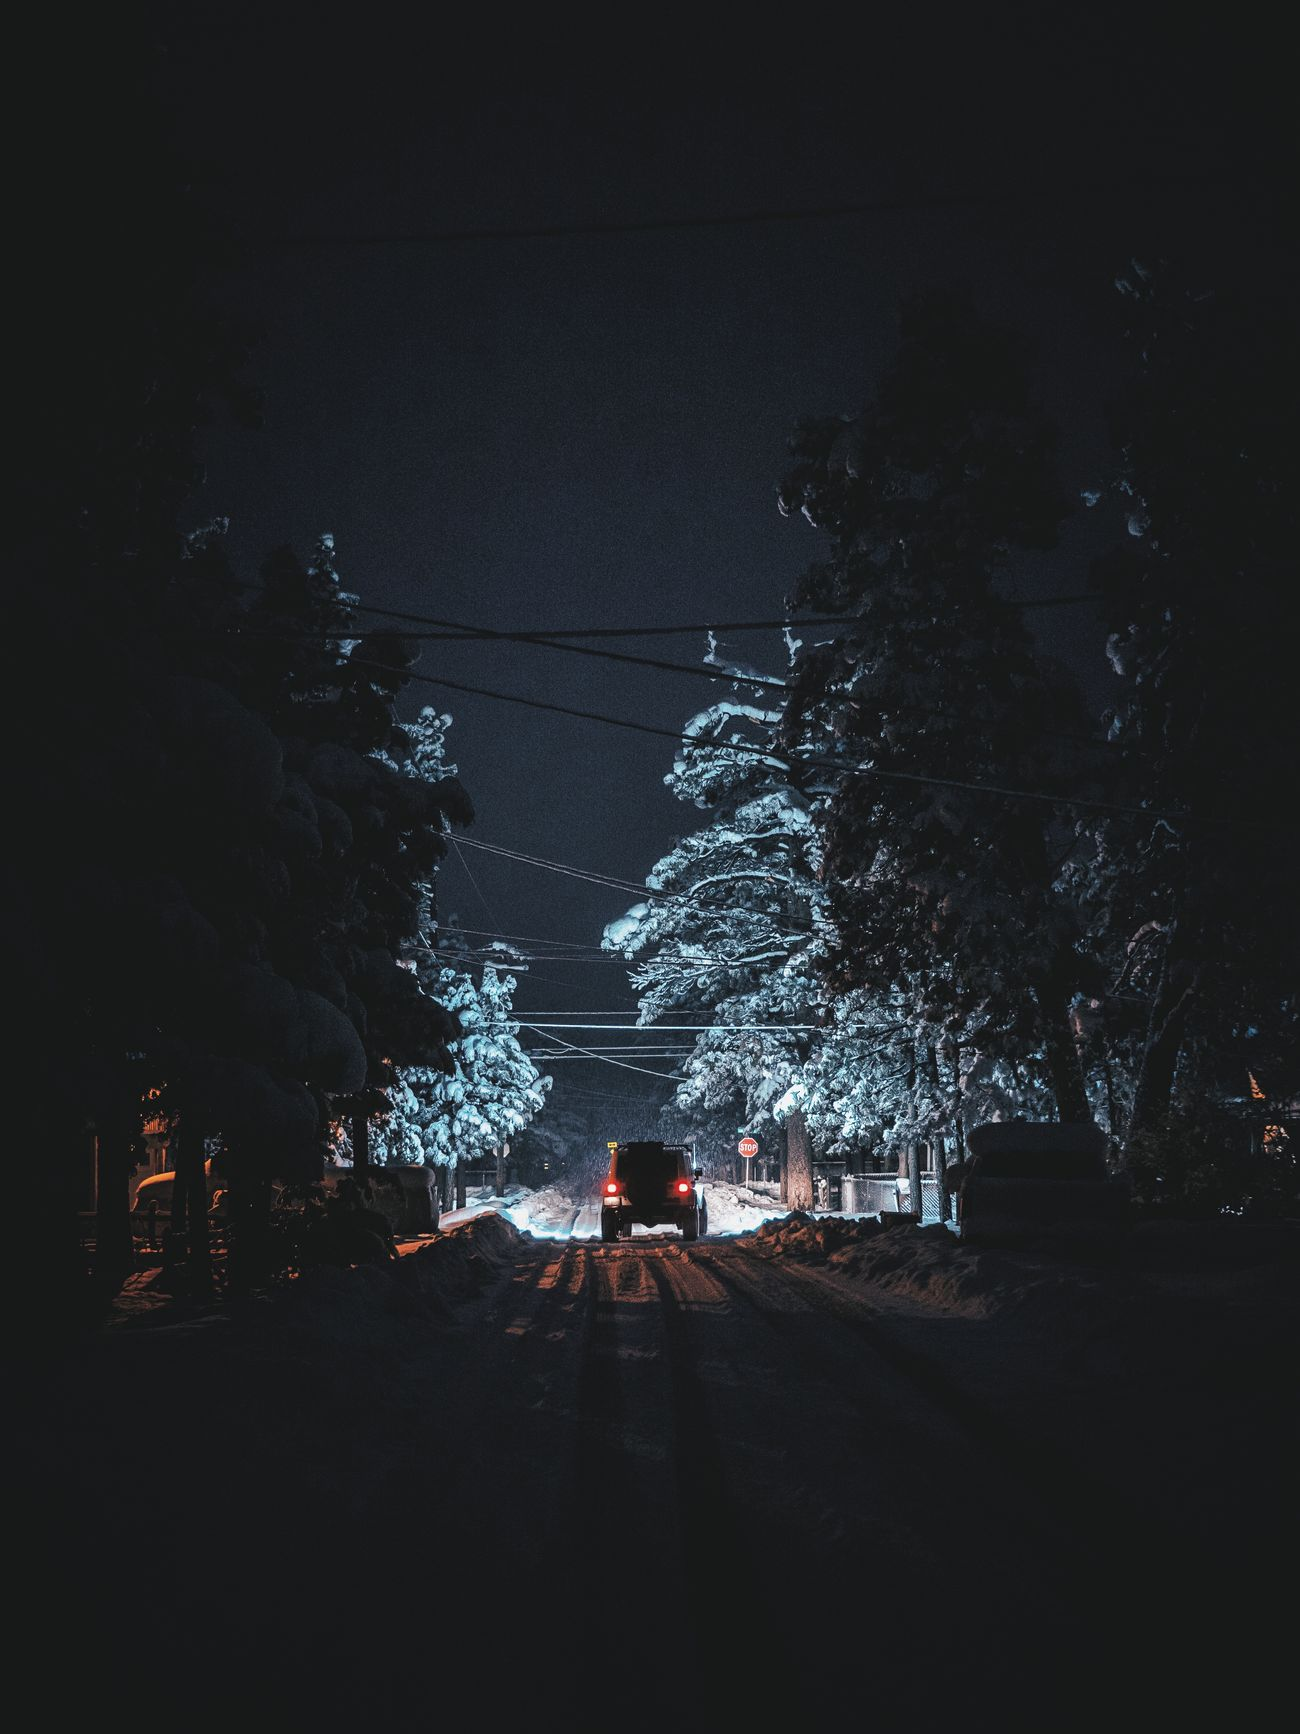 Night Illuminated Outdoors Environment Winter Wonderland Snowing Nature Naturelover StillLife Beauty In Everything EyeEm Best Shots Sonyalpha EyeEm Gallery EyeEmBestPics WeekOnEyeEm Eyeemphotography Naturephotography Sonyphotography Travel Destinations Travel Winter Snow Bigbear California Nature Photography The Great Outdoors - 2017 EyeEm Awards